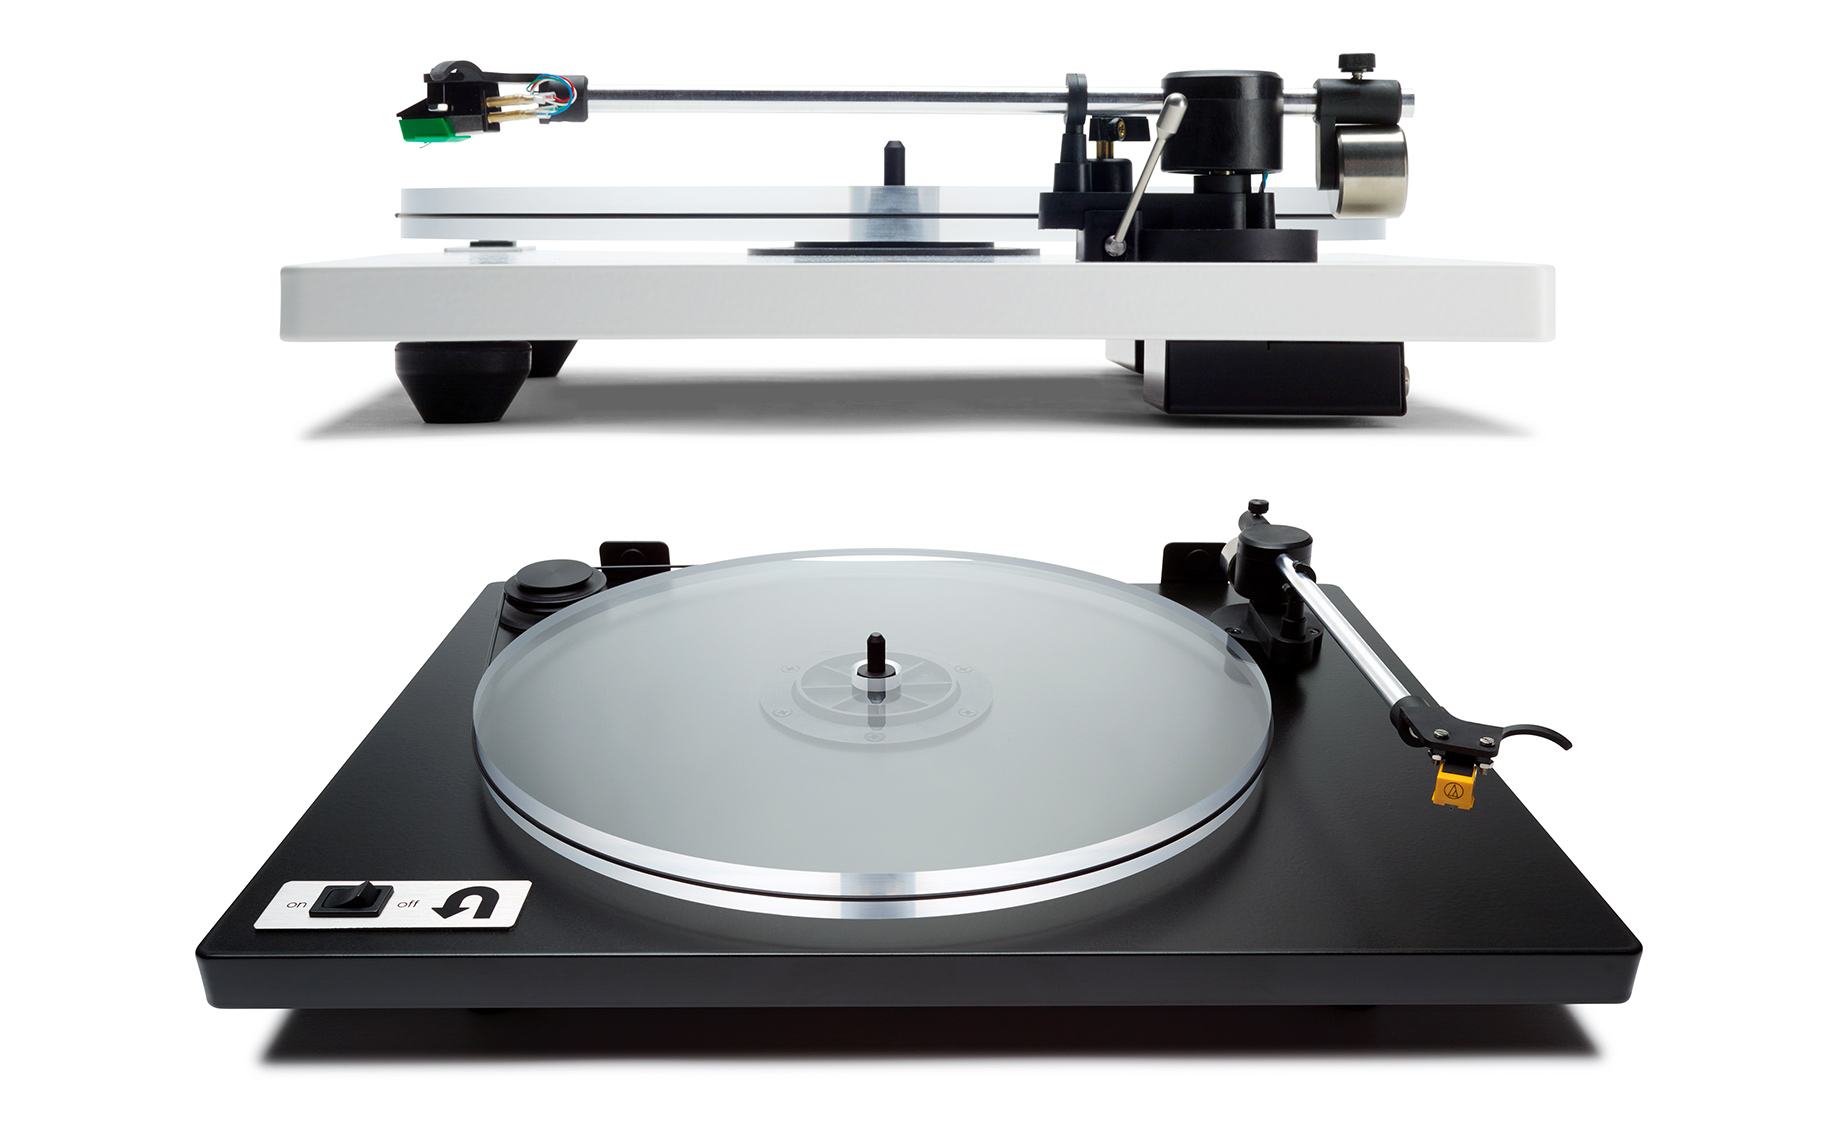 U-Turn Audio Turntable-2-images_-6360_6333-1-V2-IP